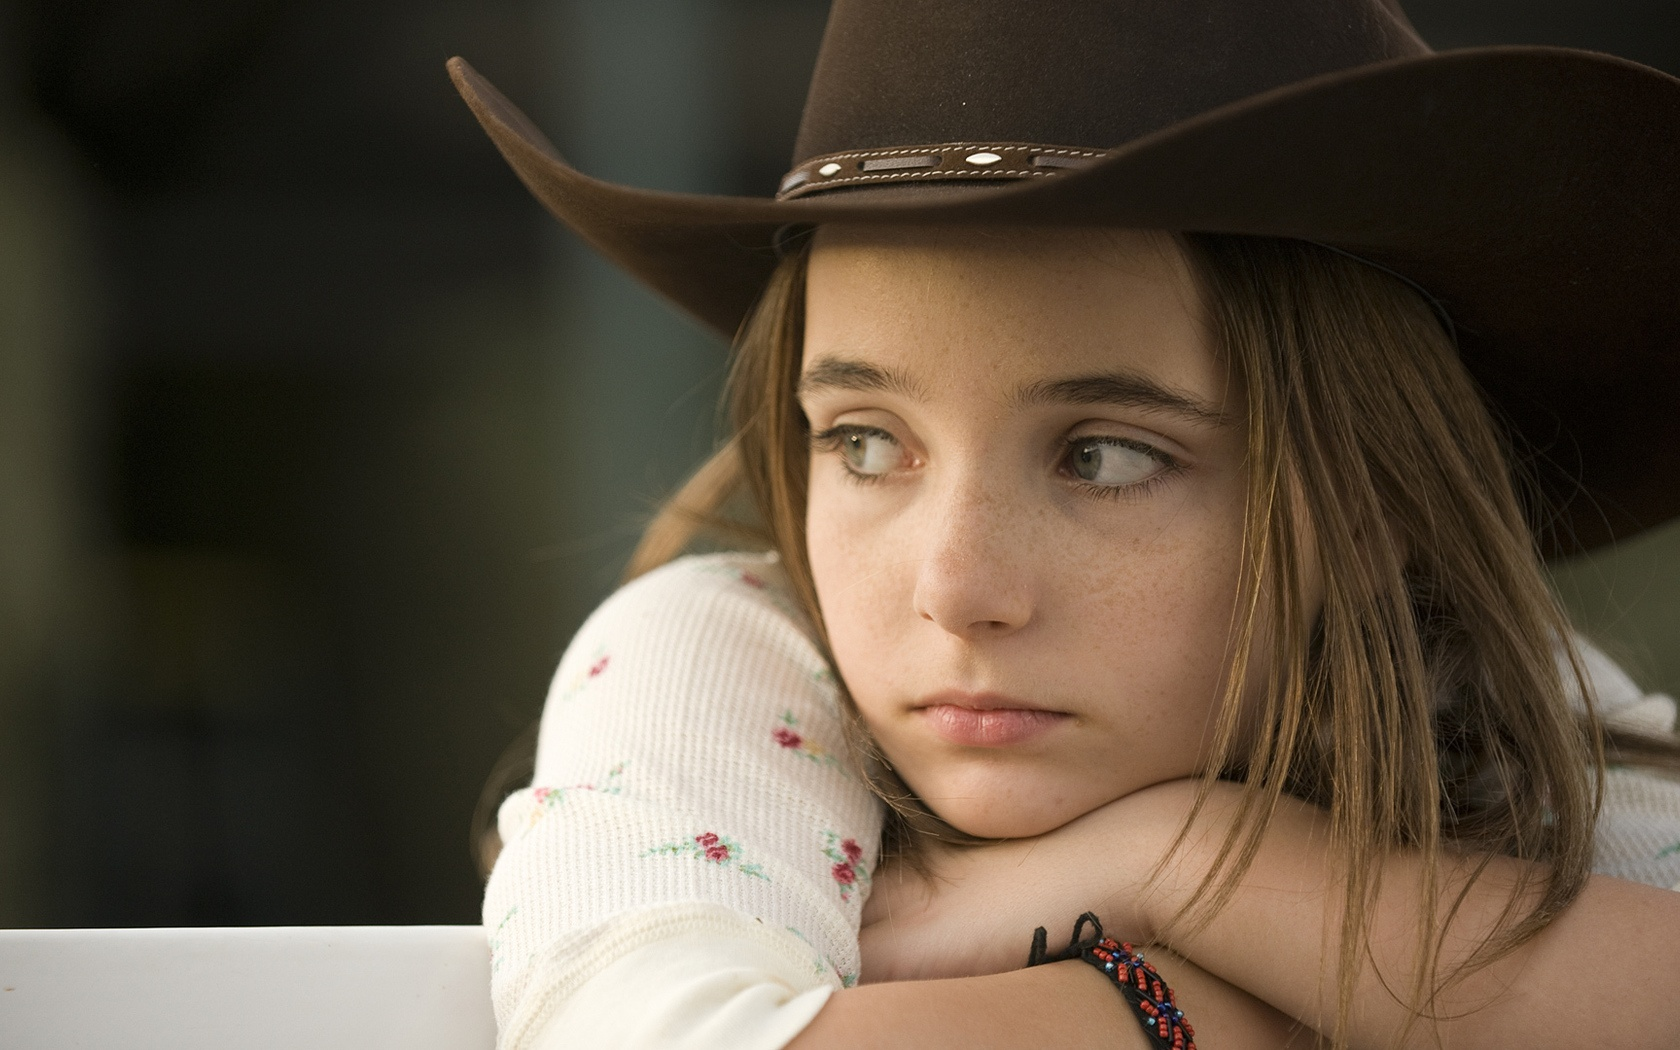 Download image Images Of Sad Girl Wallpaper Download The PC 1680x1050